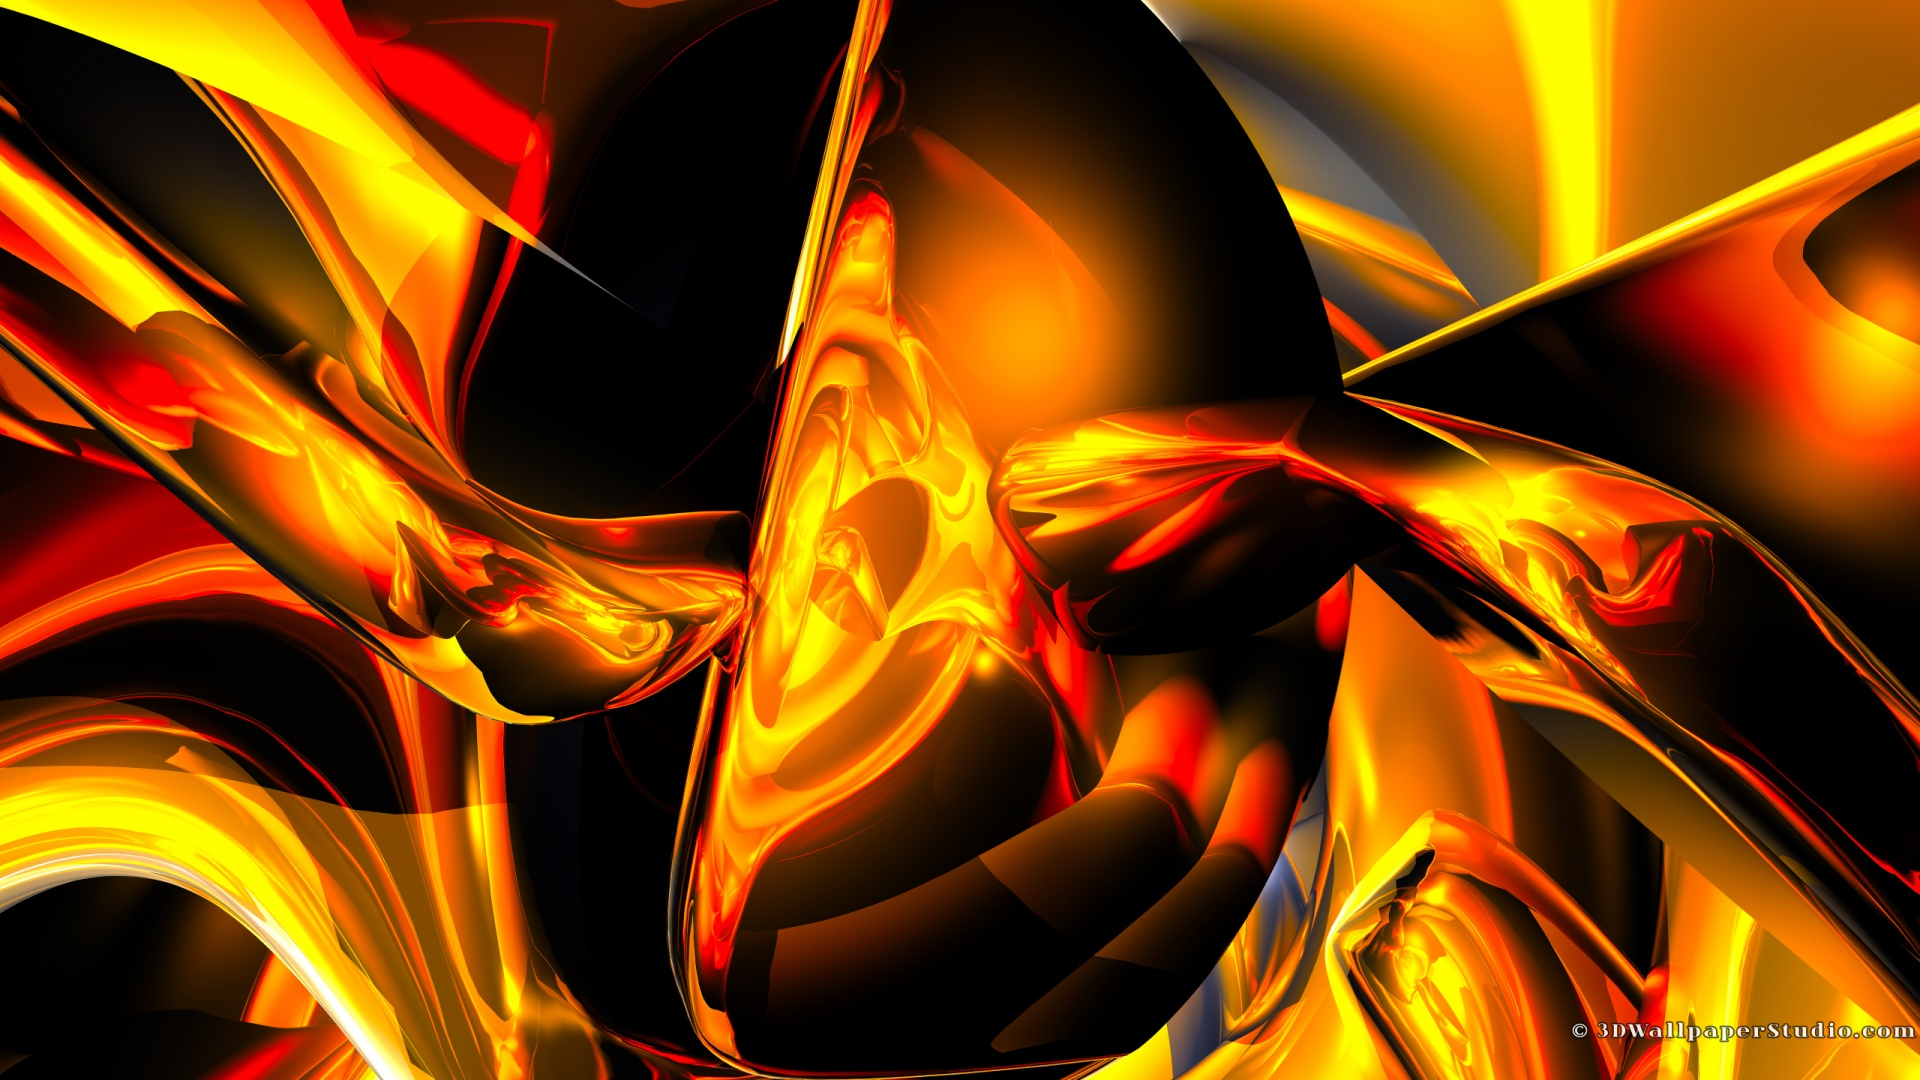 screen wallpaper abstract stone flame wallpapers 1920x1080